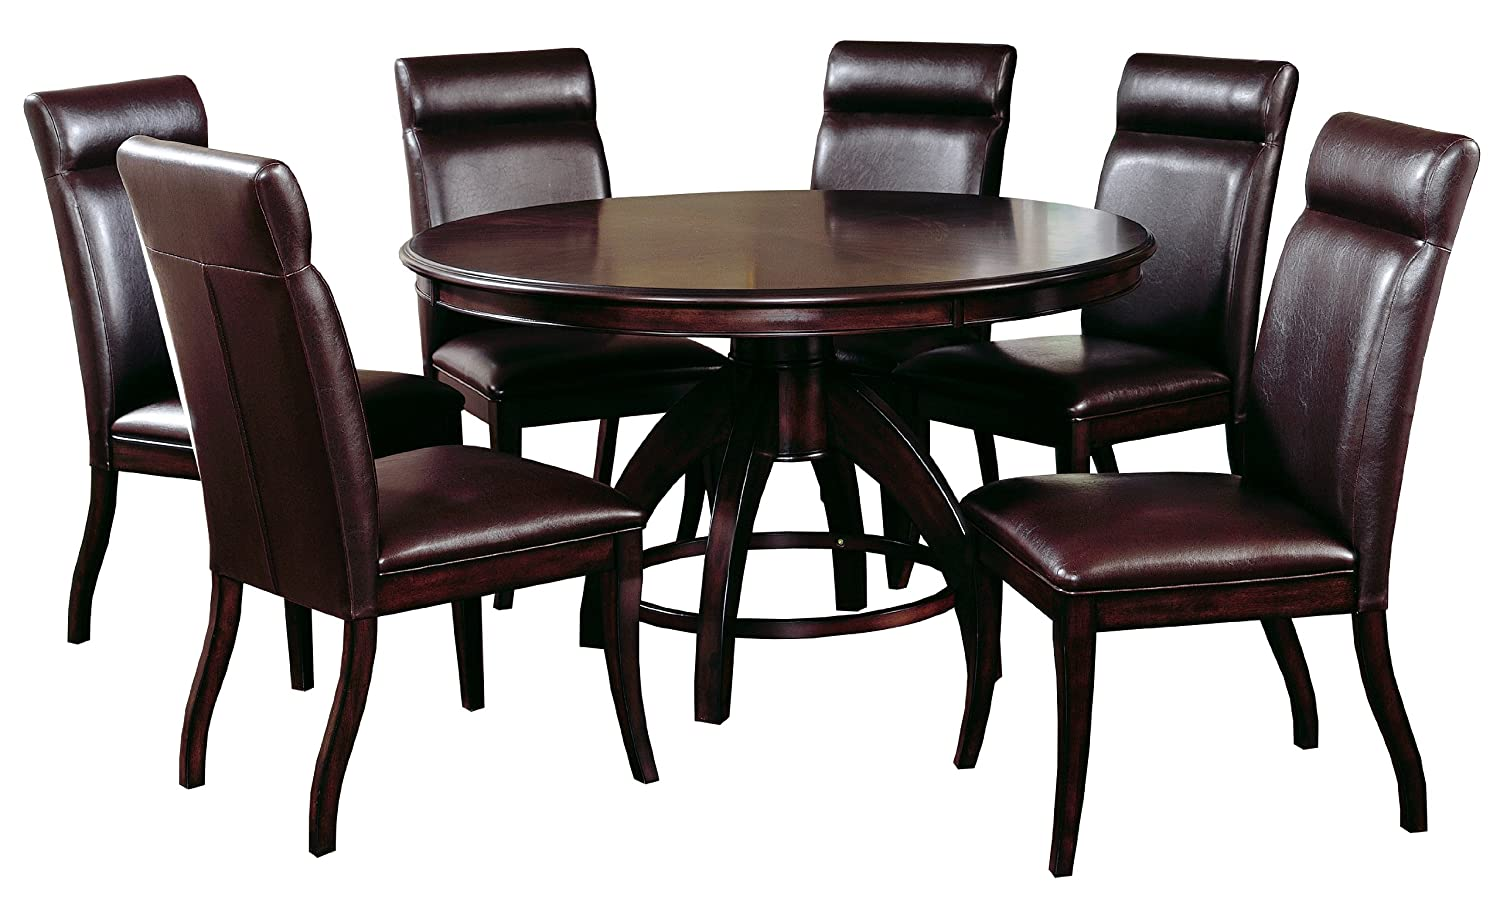 Amazon.com   Hillsdale Nottingham Round Counter Height 7 Piece Dining Set,  Dark Espresso, Set Includes 1 Table And 6 Stools   Table U0026 Chair Sets